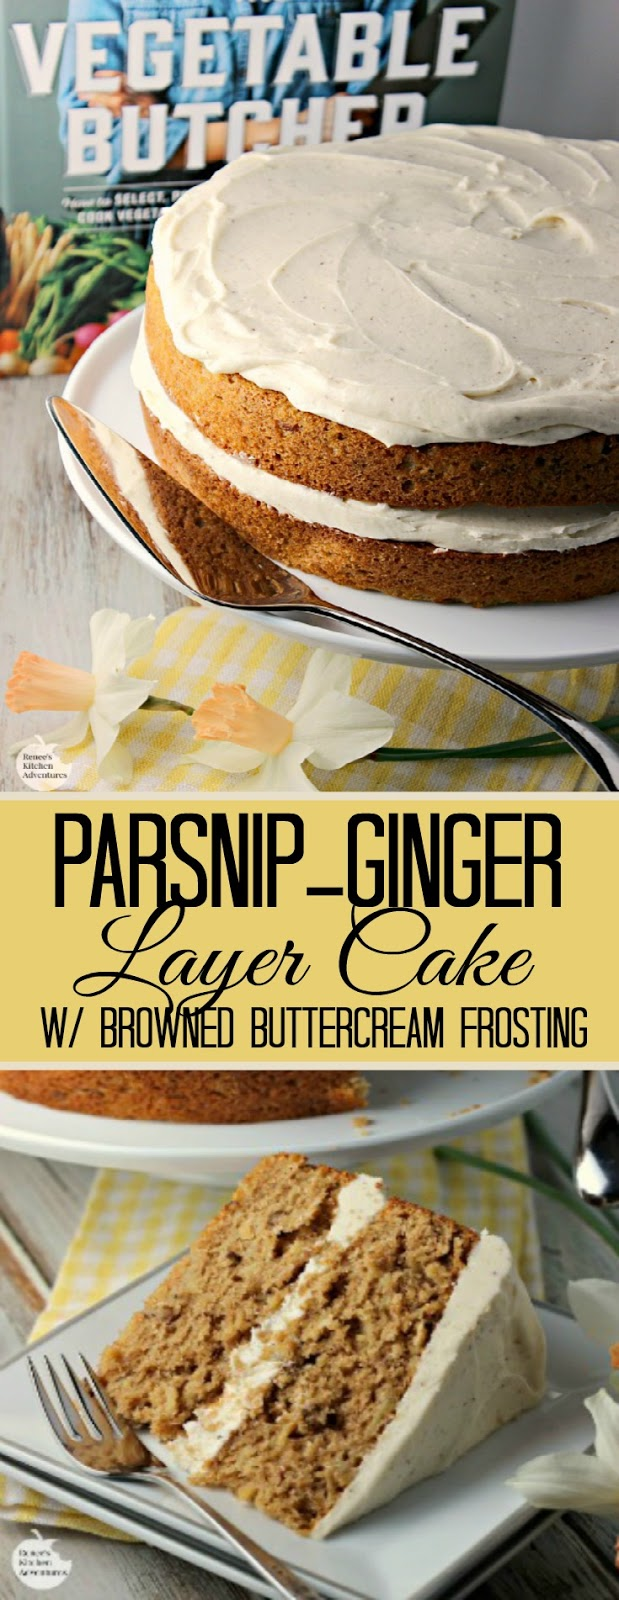 Parsnip-Ginger Layer Cake with Browned Buttercream Frosting | by Renee's Kitchen Adventures - dessert cake recipe made with fresh parsnips and ginger! from the cookbook The Vegetable Butcher #WeekdaySupper